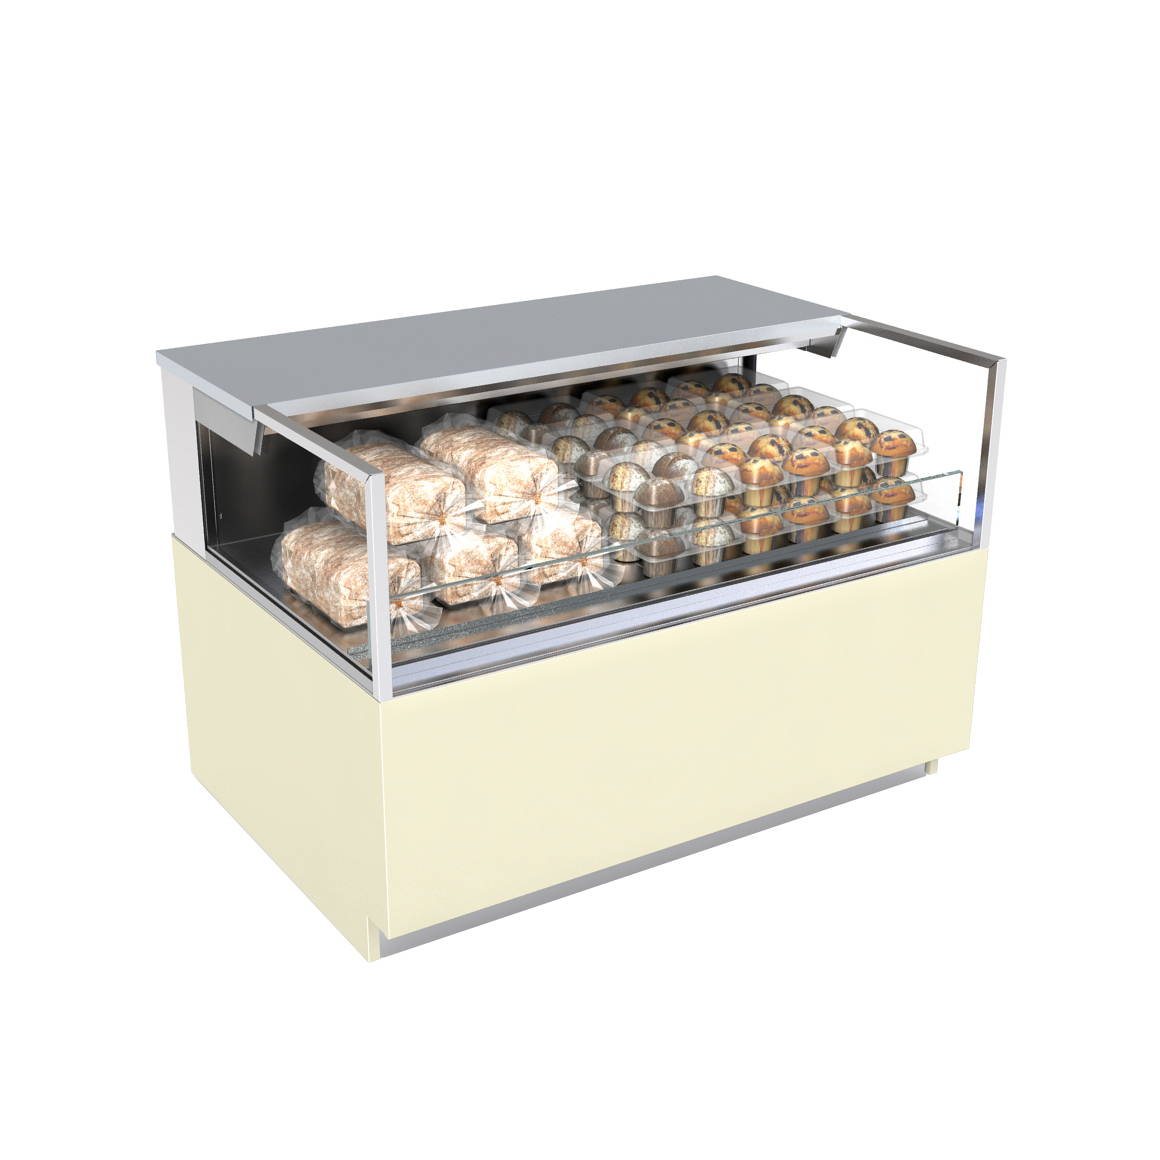 Structural Concepts NR3633DSSV display case, non-refrigerated, self-serve